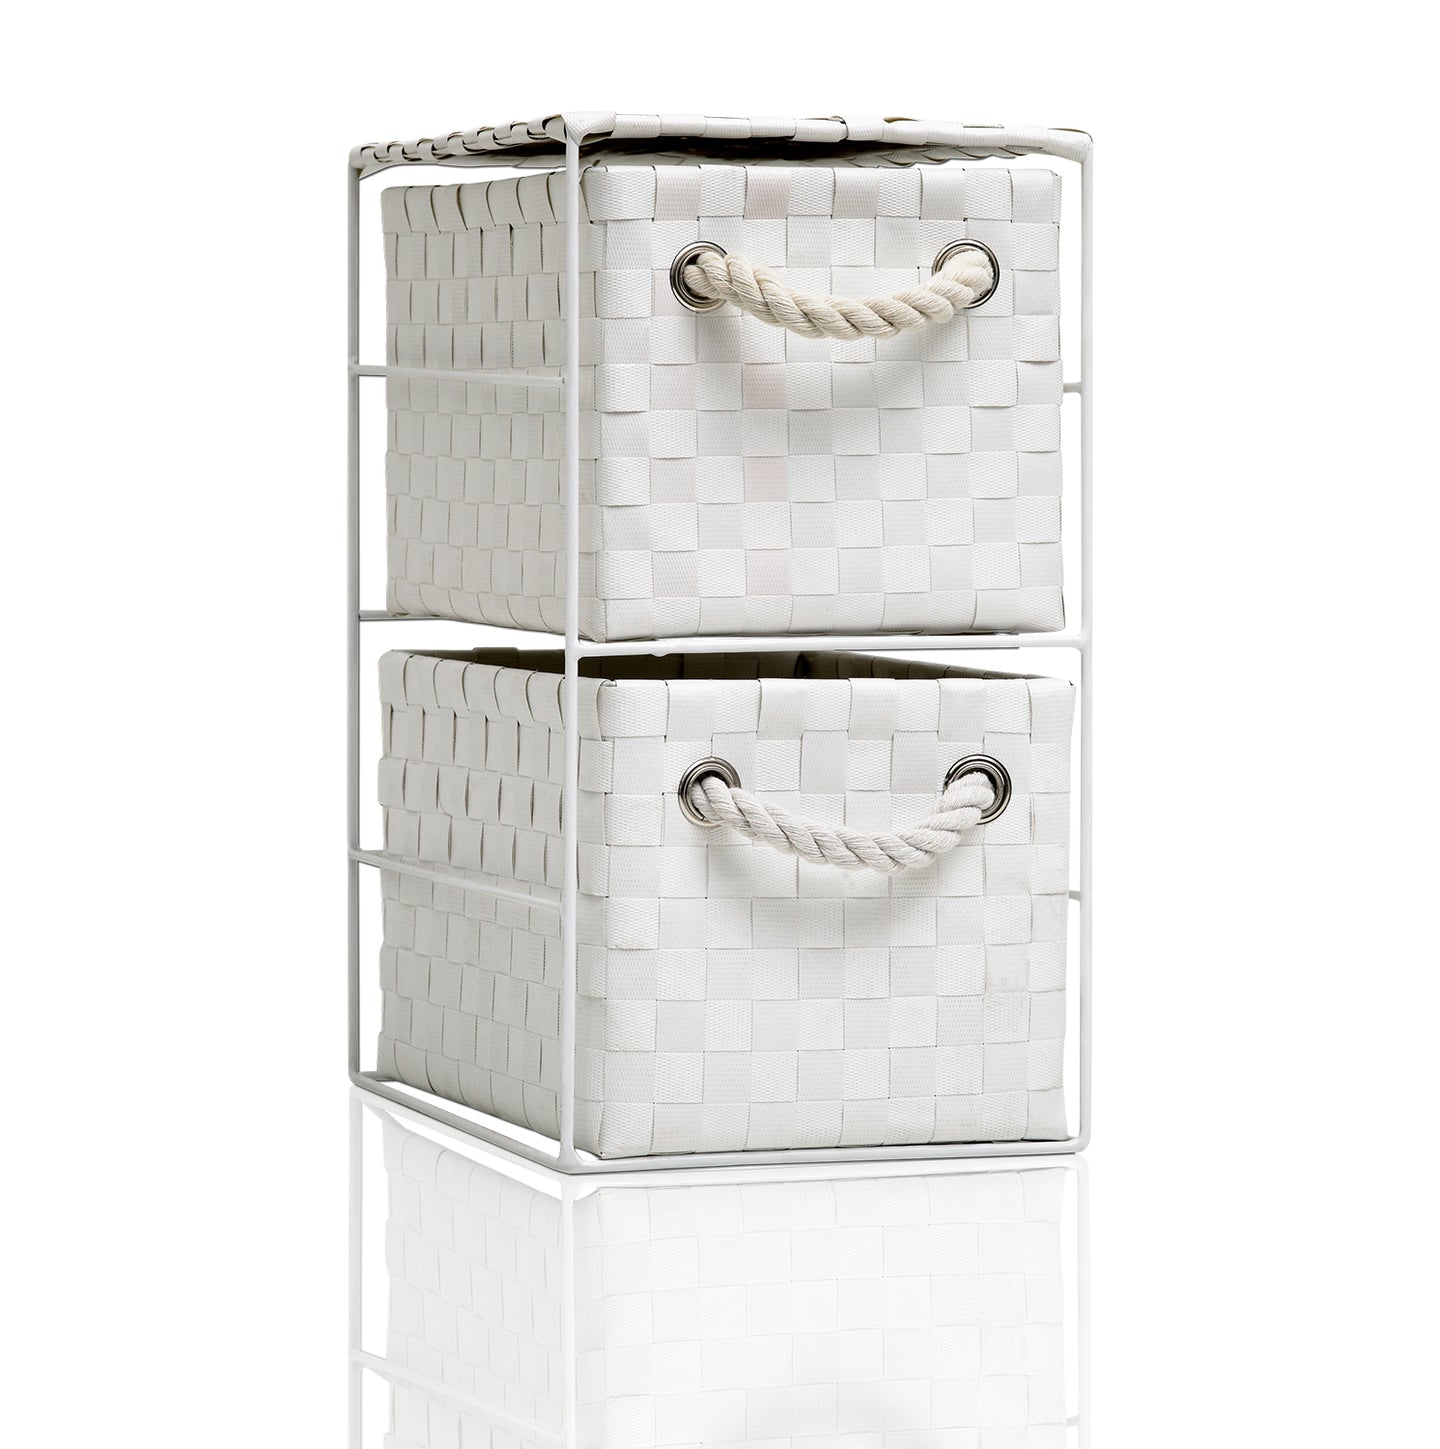 Arpan 2 Drawer Storage Cabinet Unit Ideal for Home/Office/bedrooms (2 Drawer Unit -18x25x33cm)